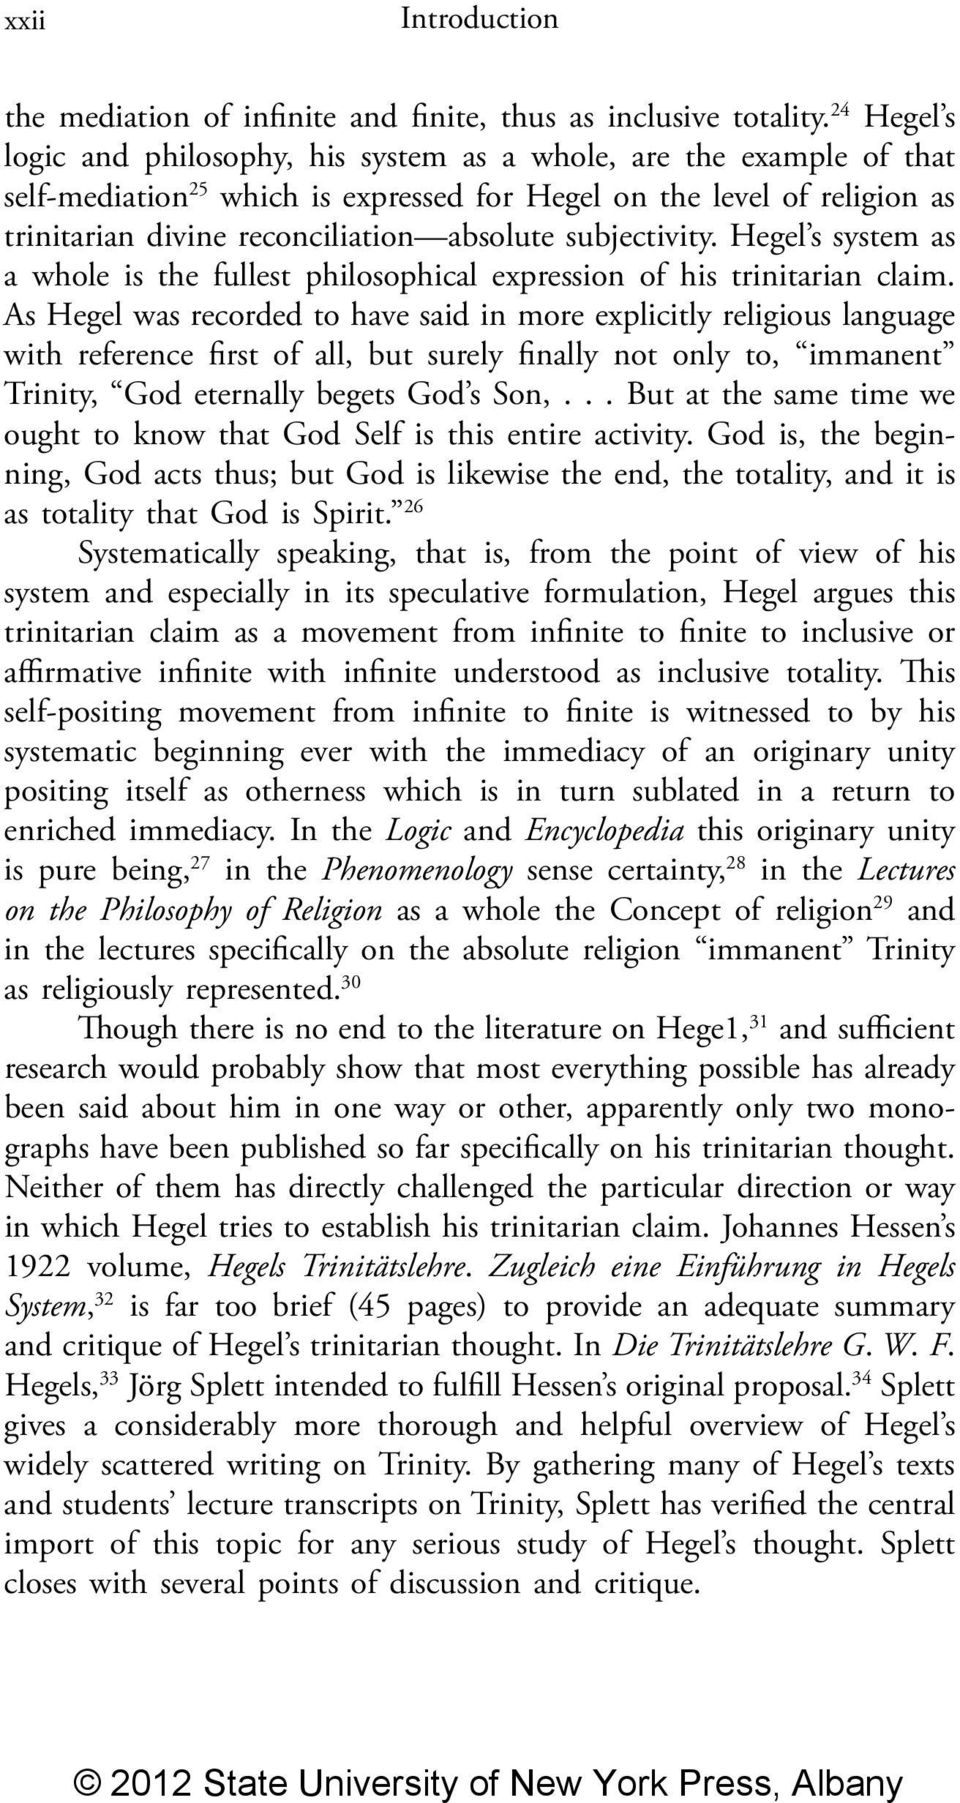 subjectivity. Hegel s system as a whole is the fullest philosophical expression of his trinitarian claim.